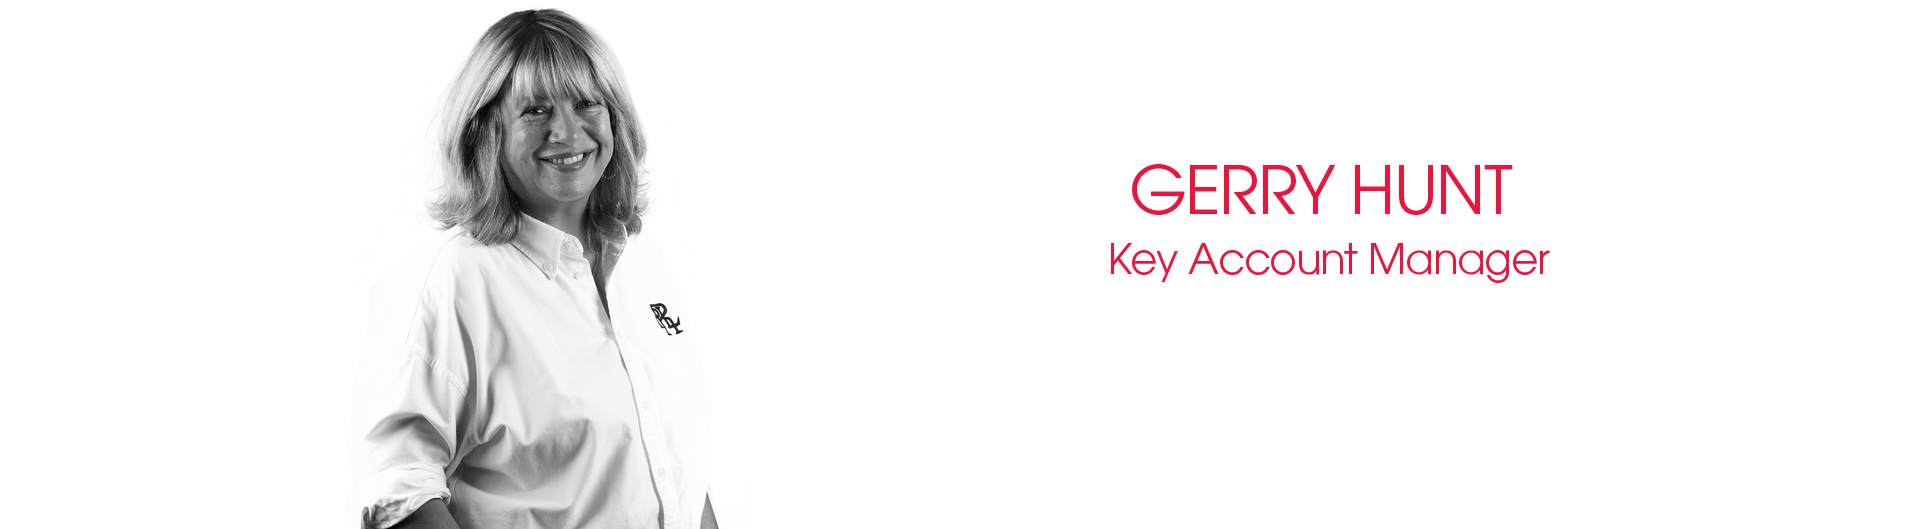 Gerry Hunt Key Account Manager